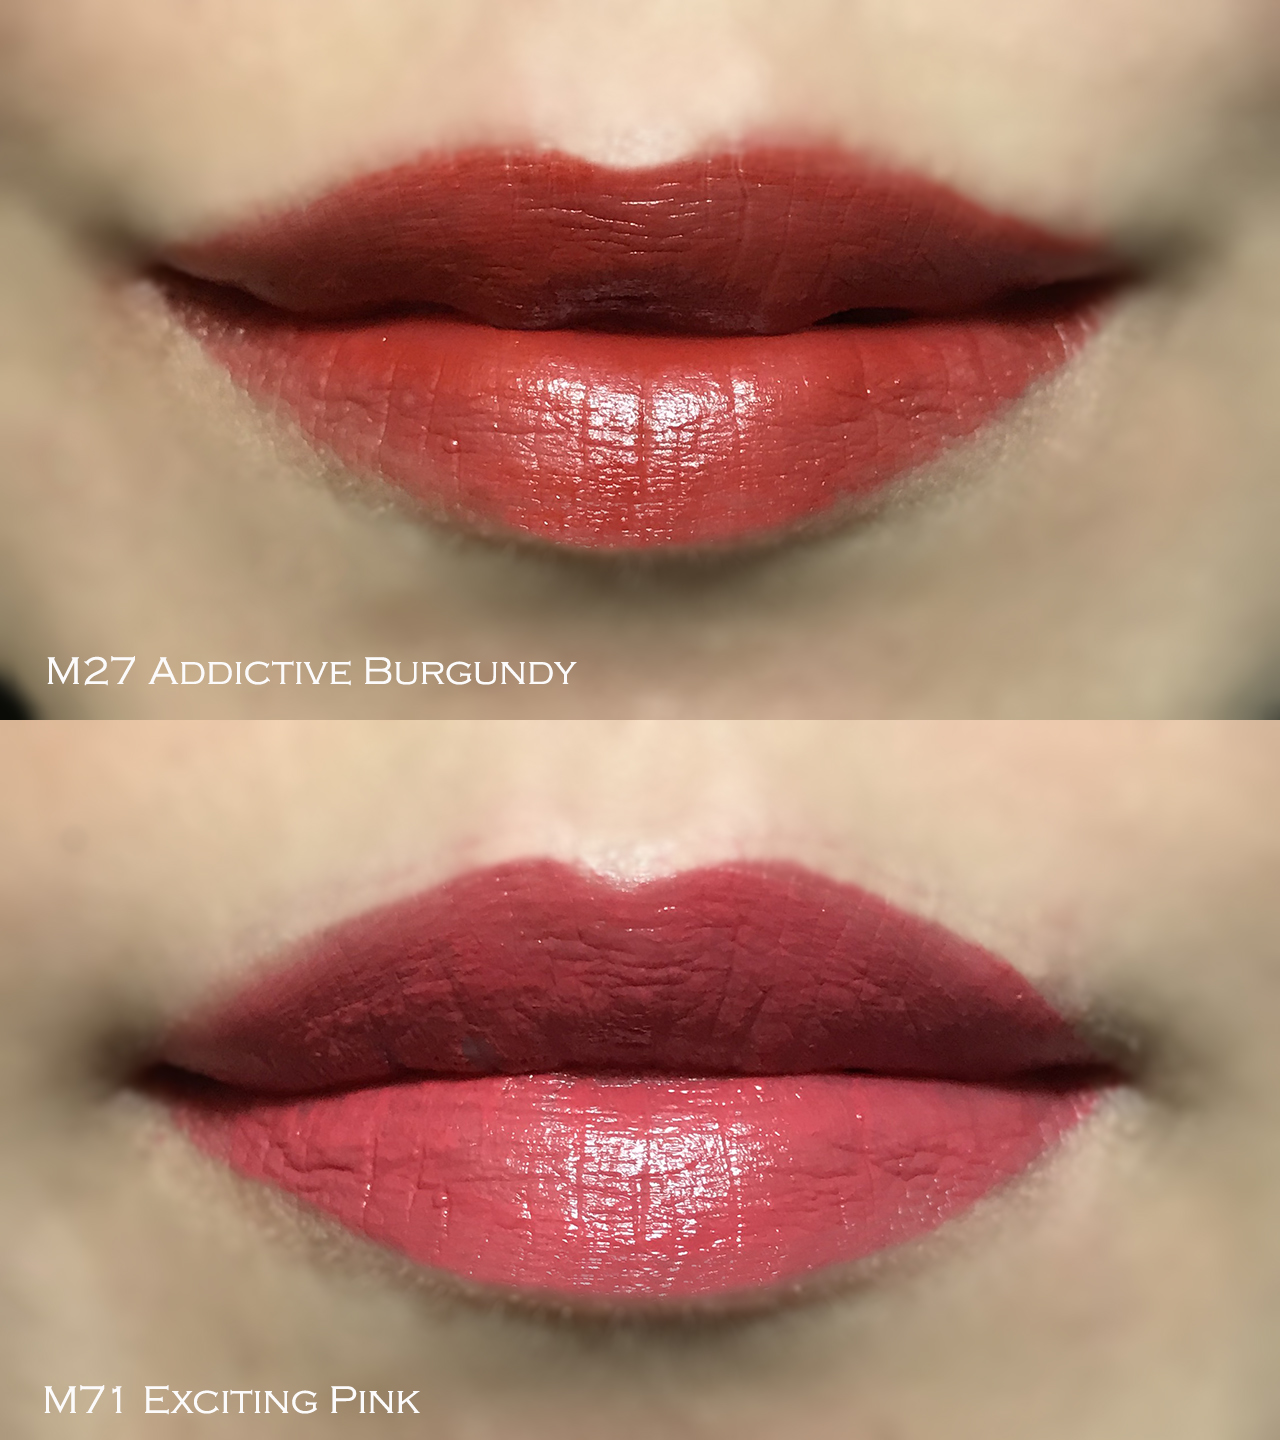 Guerlain Kiss Kiss Intense Liquid Matte Lipstick lip swatches